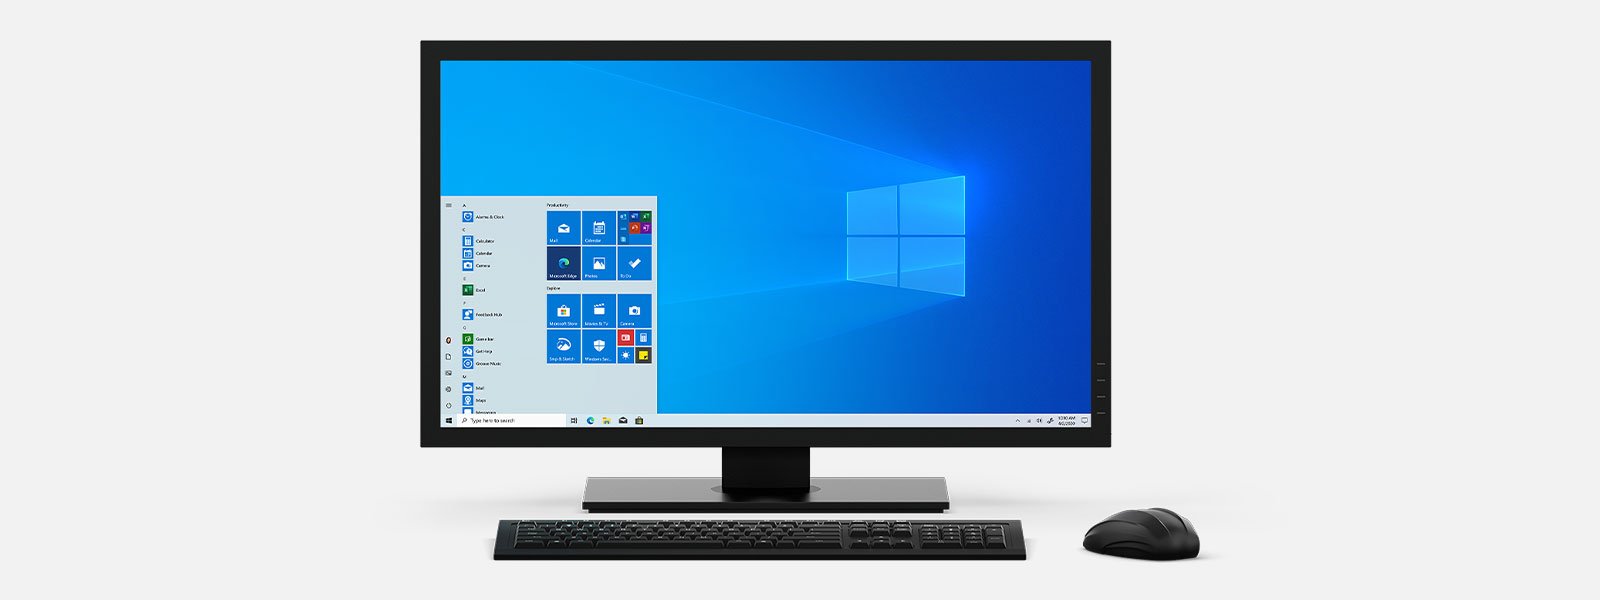 A collection of windows 10 Desktops and All-in-ones